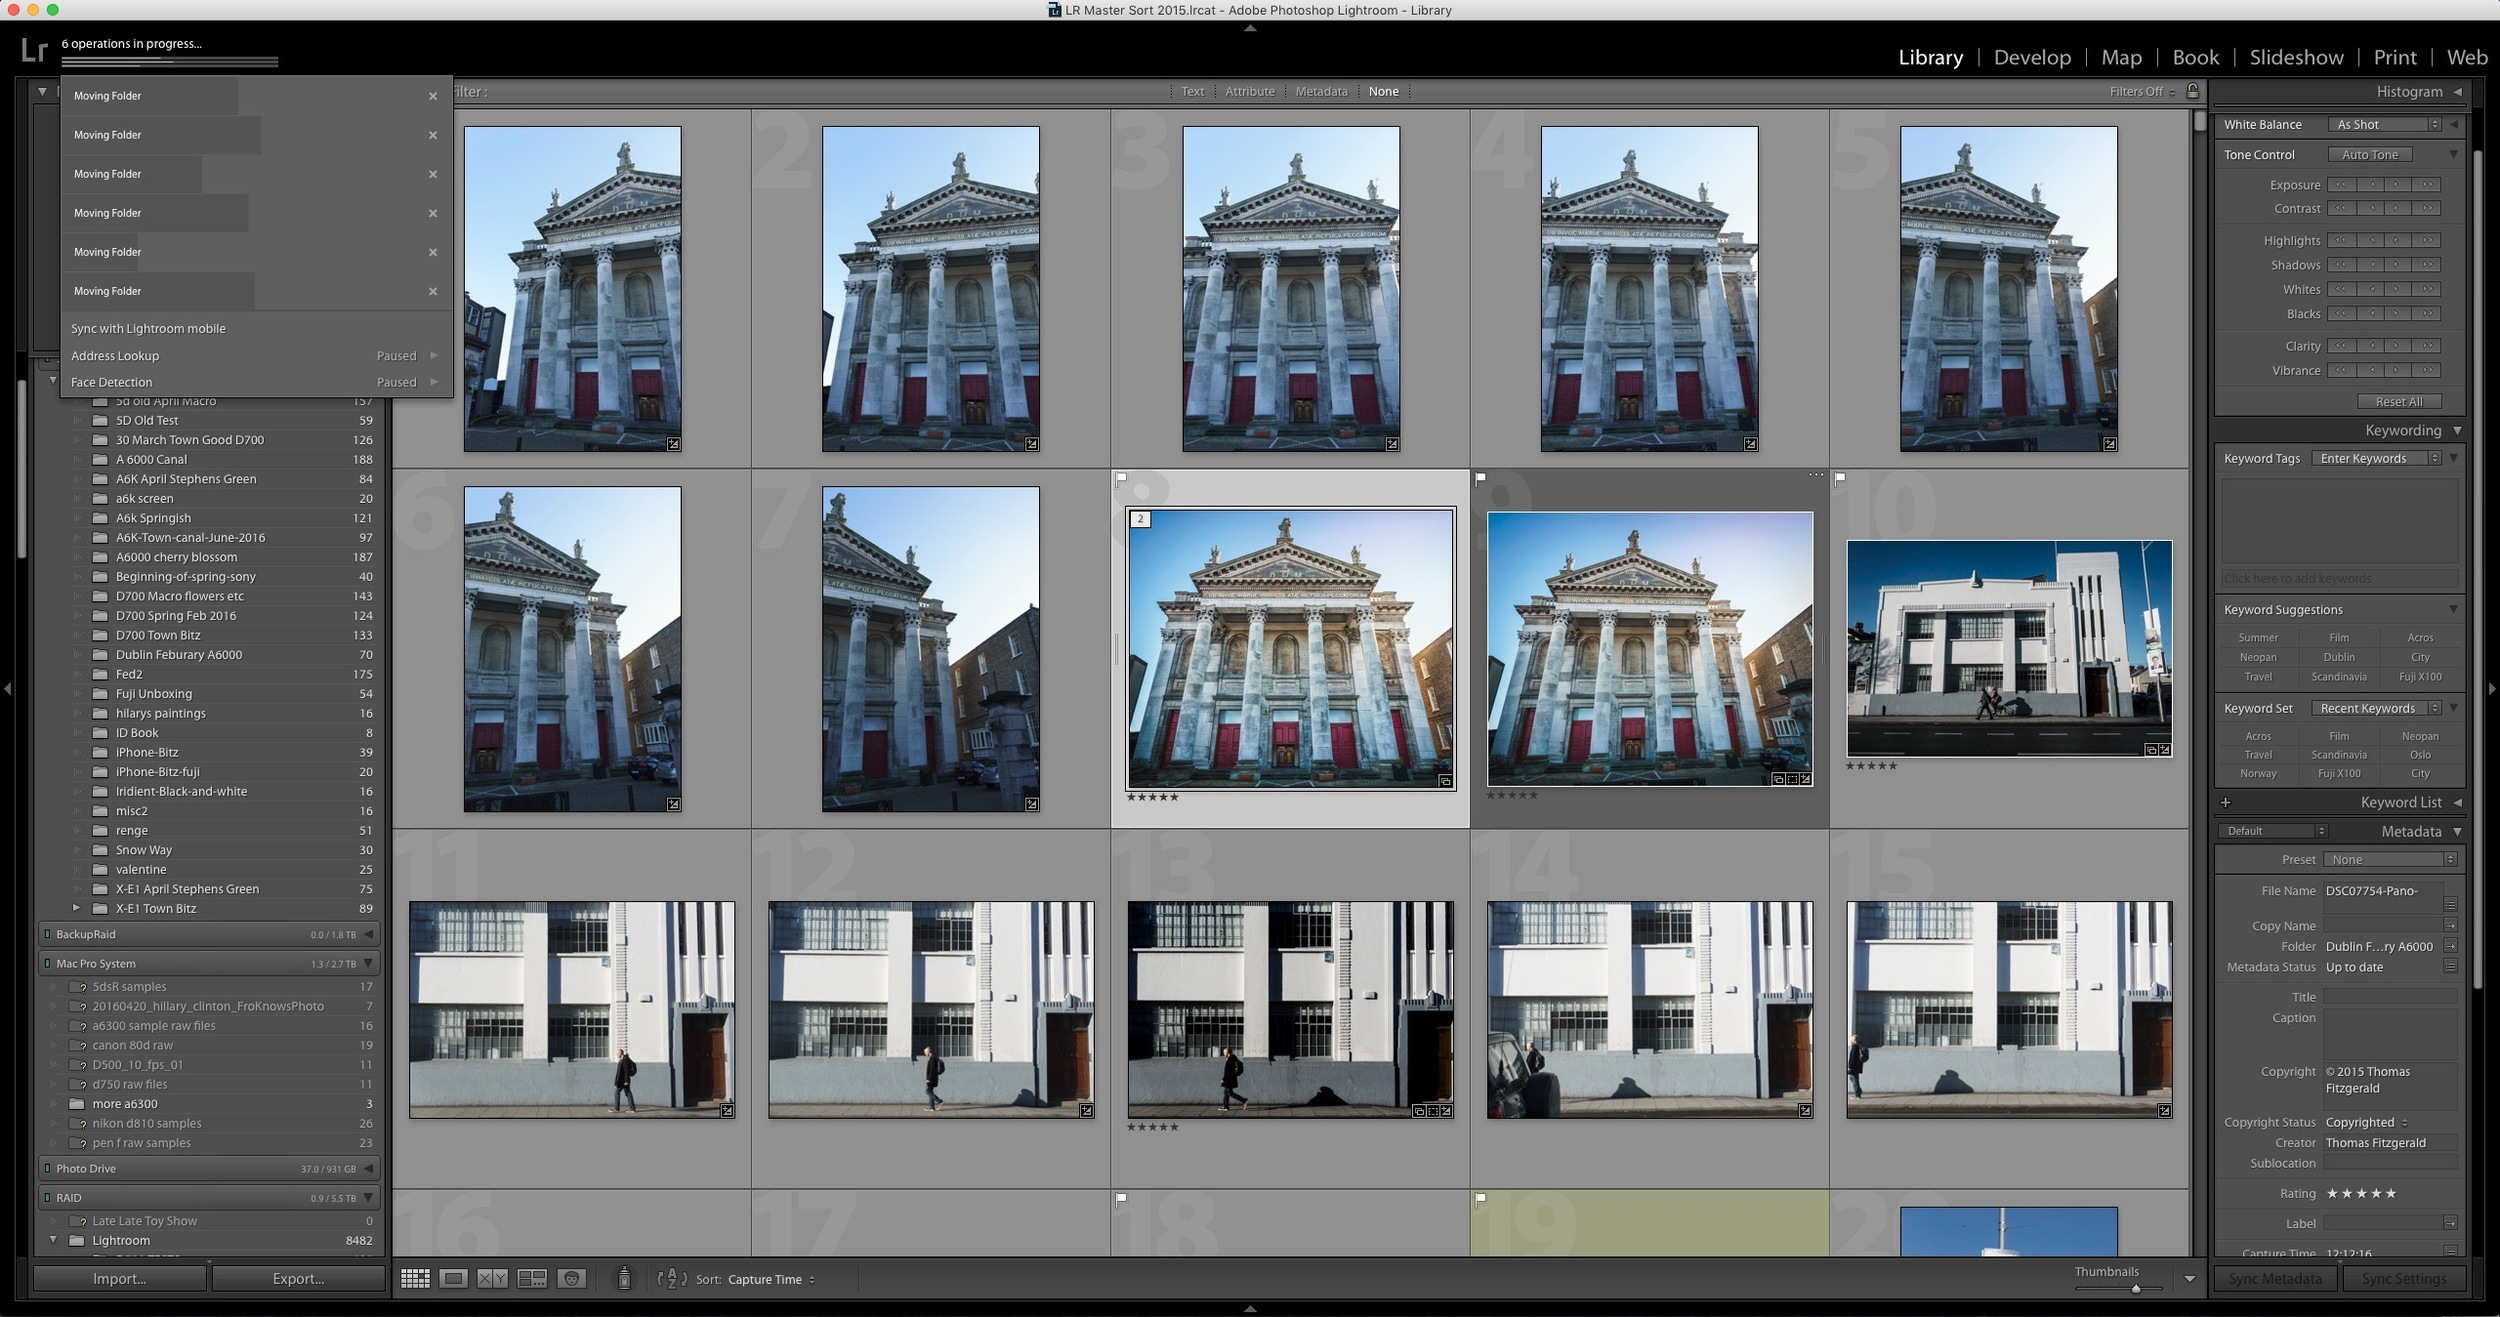 Archiving Projects in Lightroom